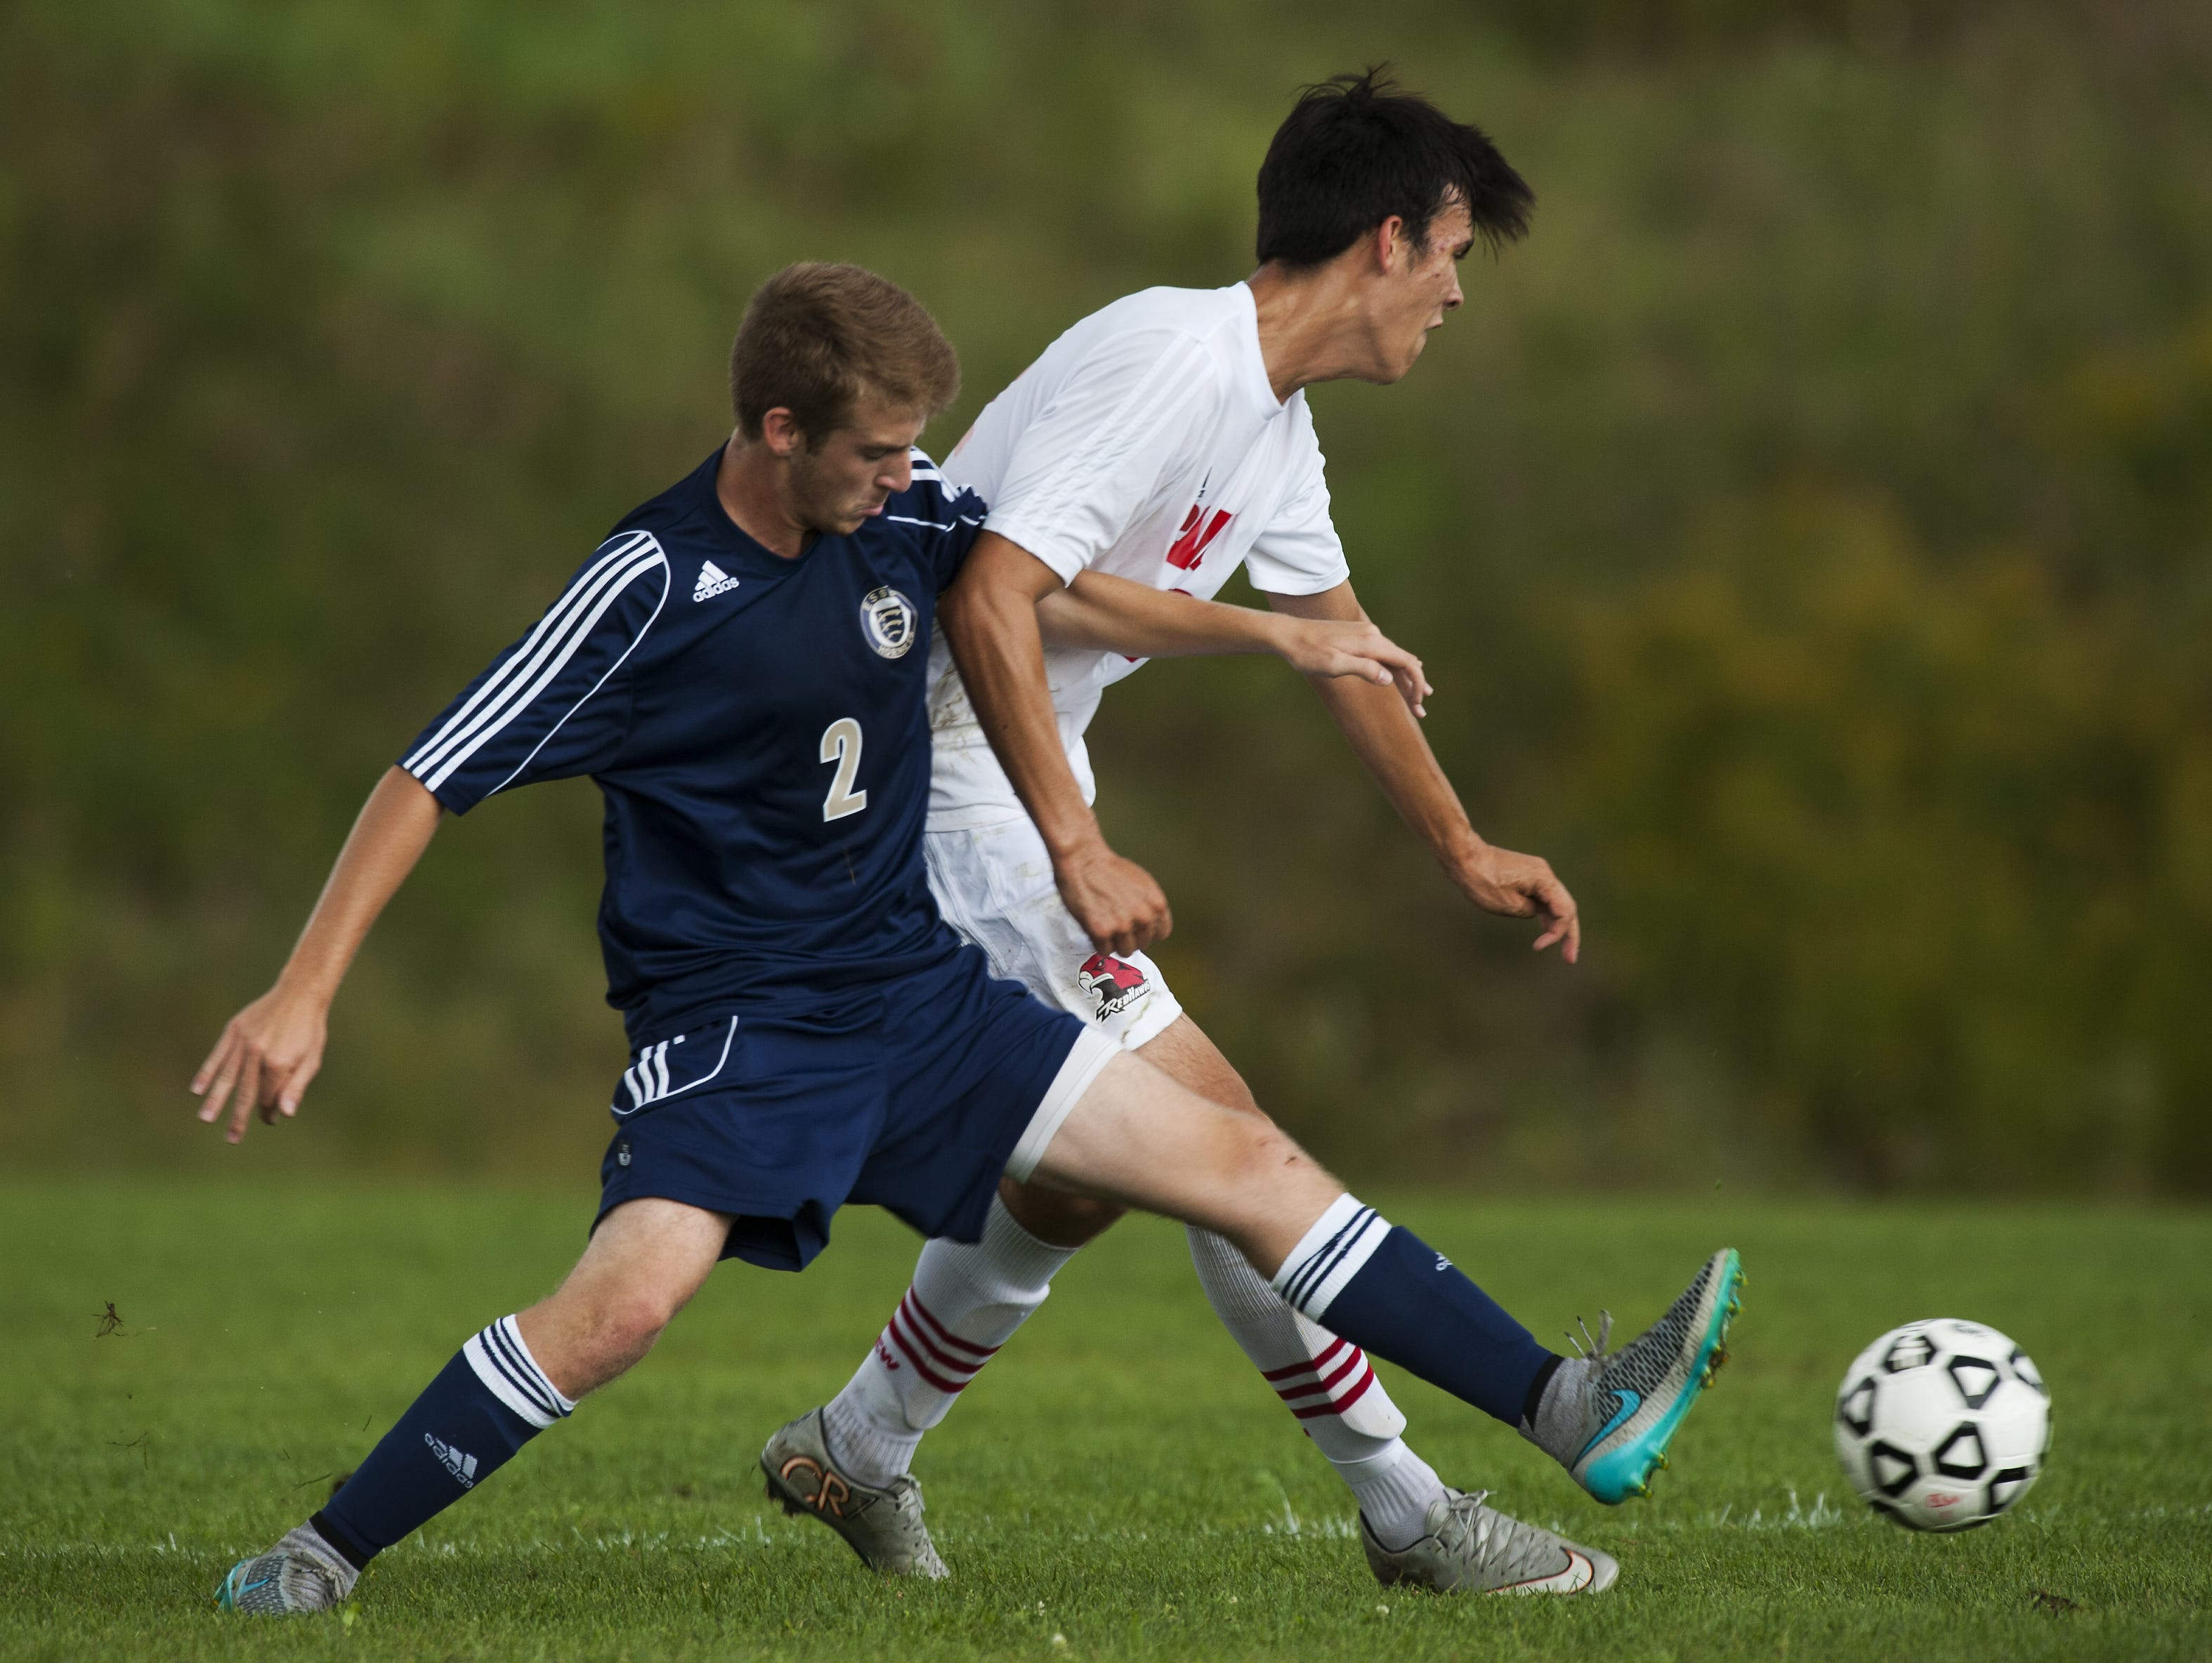 Essex's Aidan Whitney (2) battles for the ball with CVU's Adam Hamilton (22) during the boys varsity soccer game on Wednesday in Hinesburg.